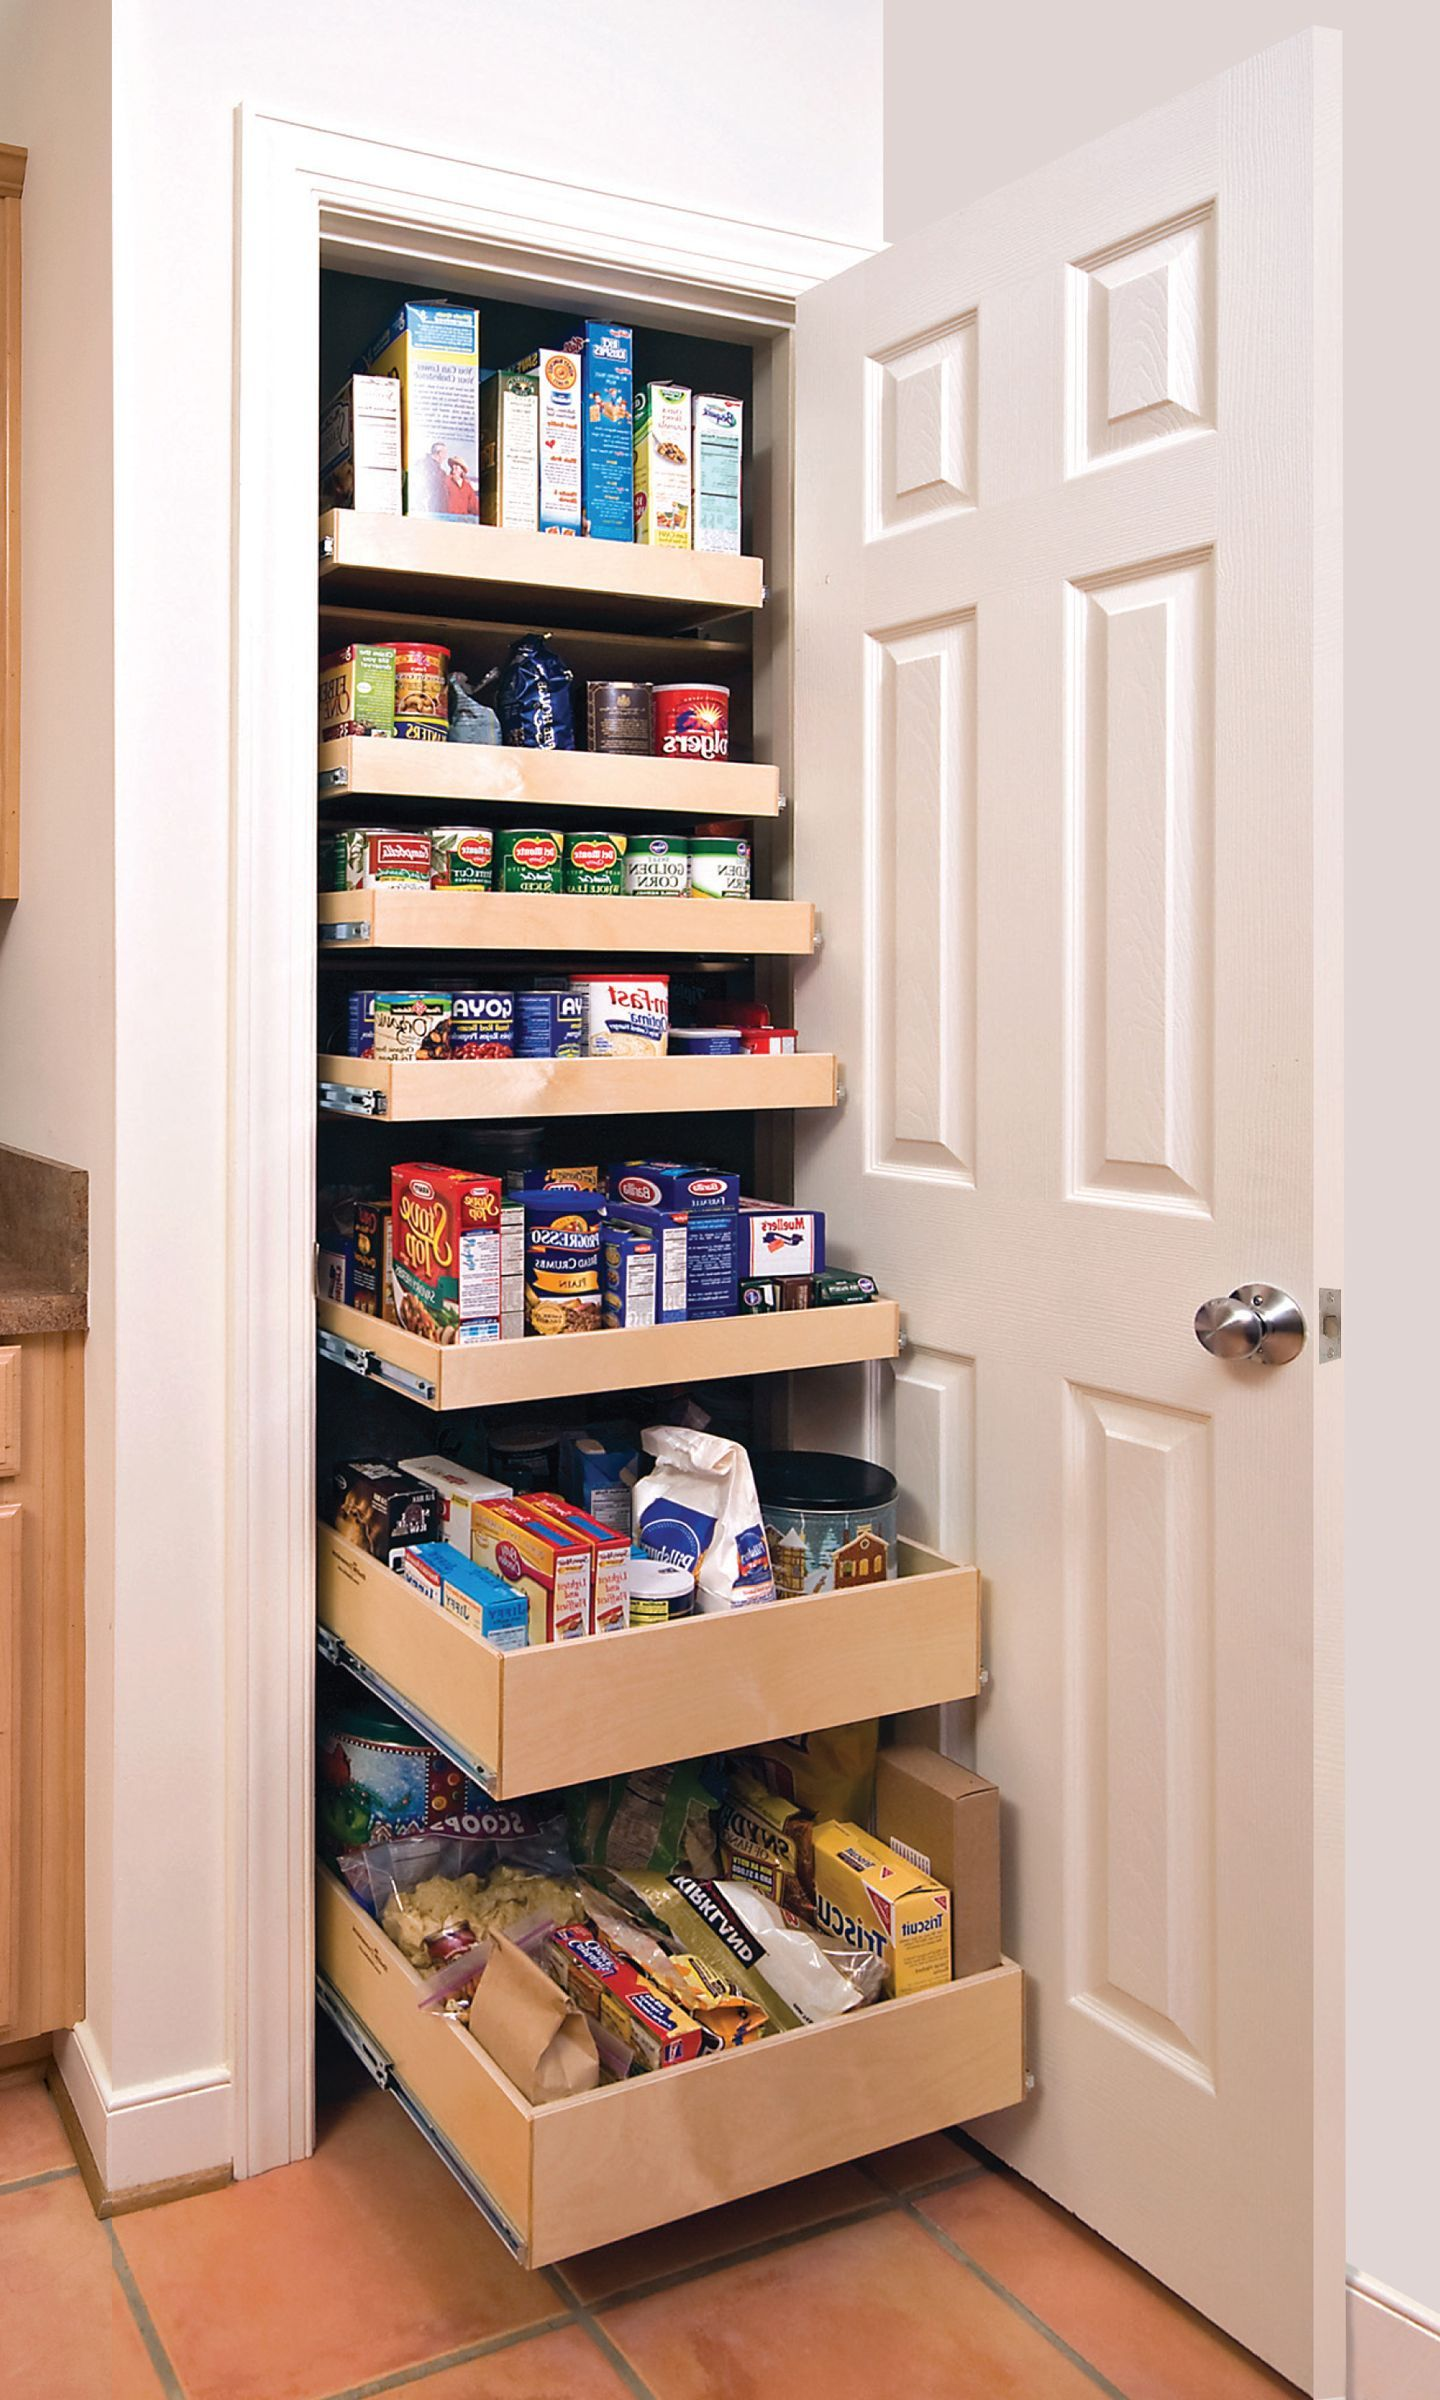 Unique Diy Kitchen Pantry Ideas with Closet DesignUnique Diy Kitchen Pantry  Ideas With Closet Design : Kitchen Pantry Ideas For Elegant Cooking Space  ...